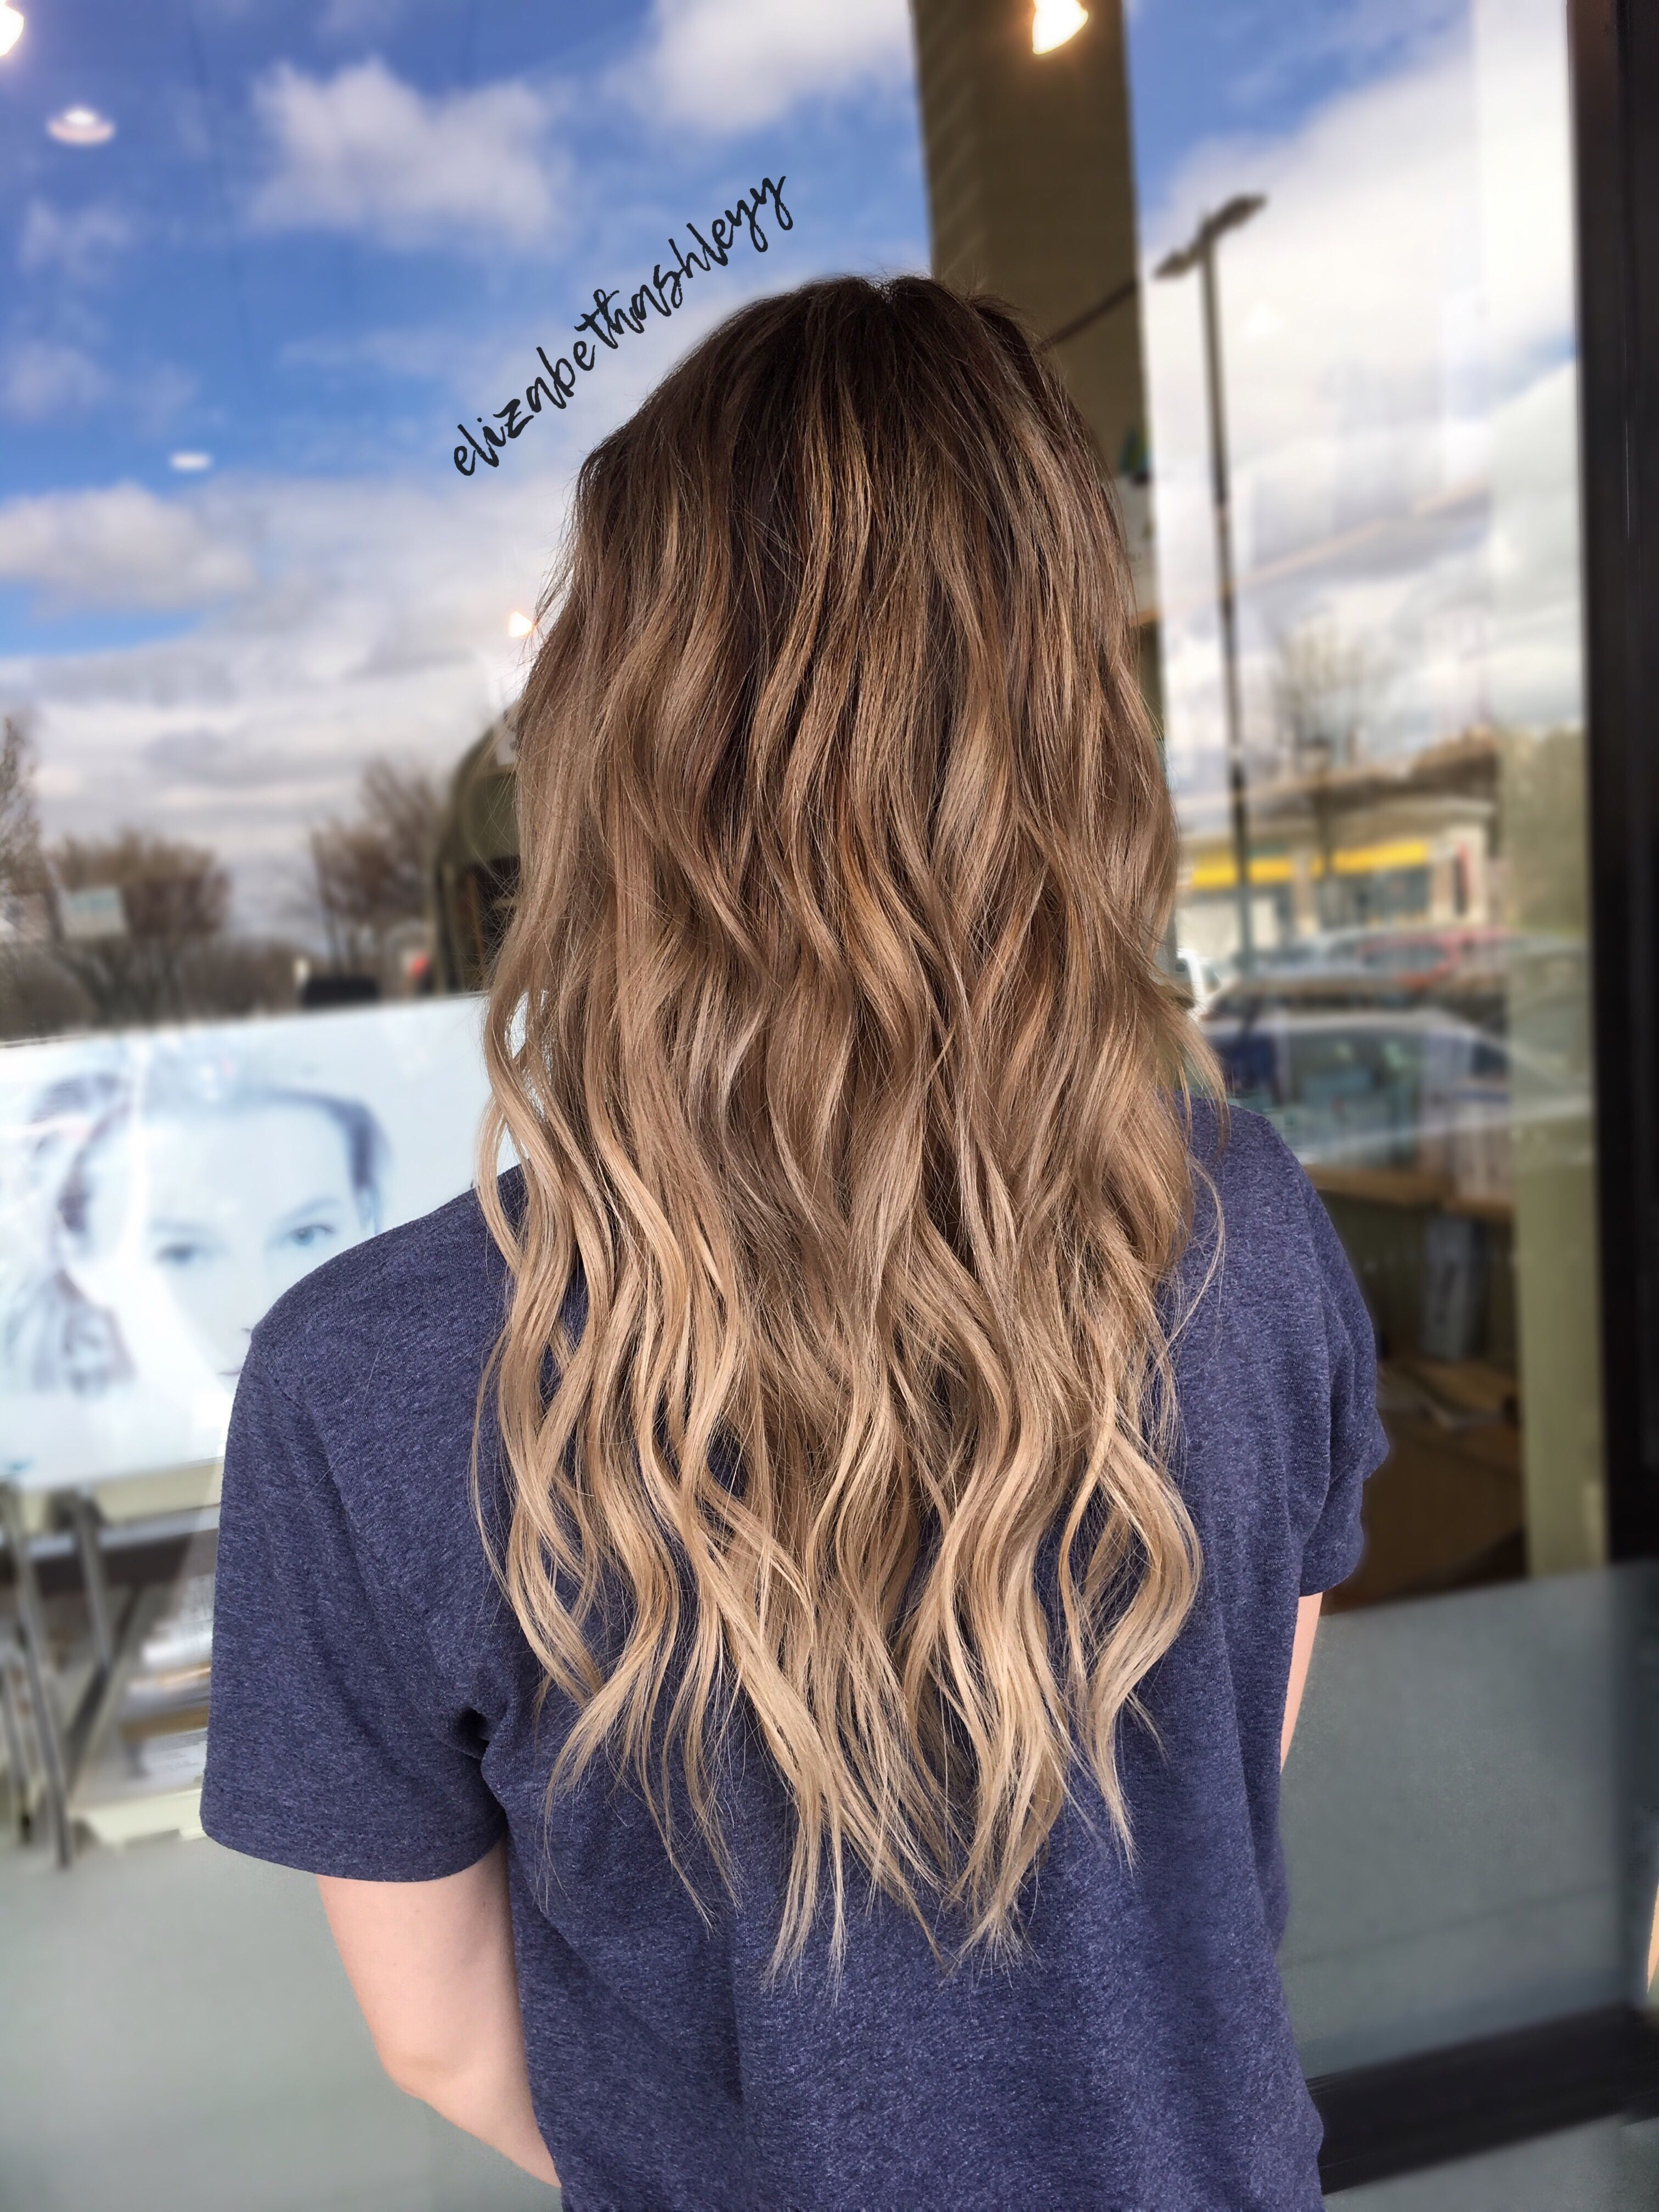 Natural Blonde Ombr Blonde Balayage Ombr Tape In Extensions